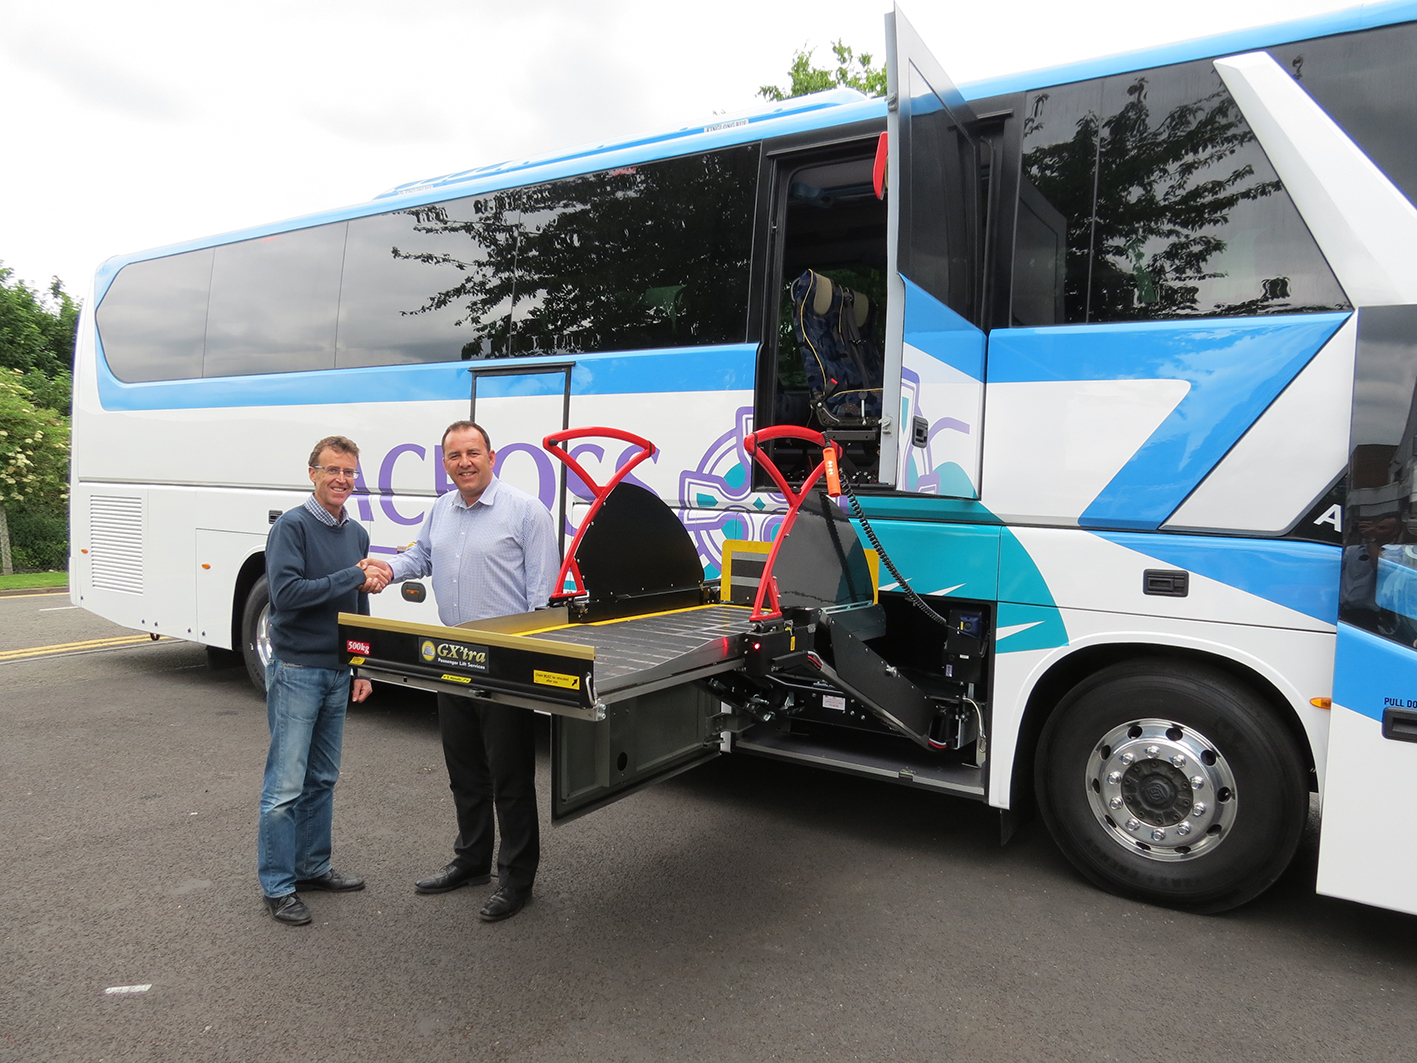 PLS installs pioneering passenger stretcher lift to bespoke accessible care coach